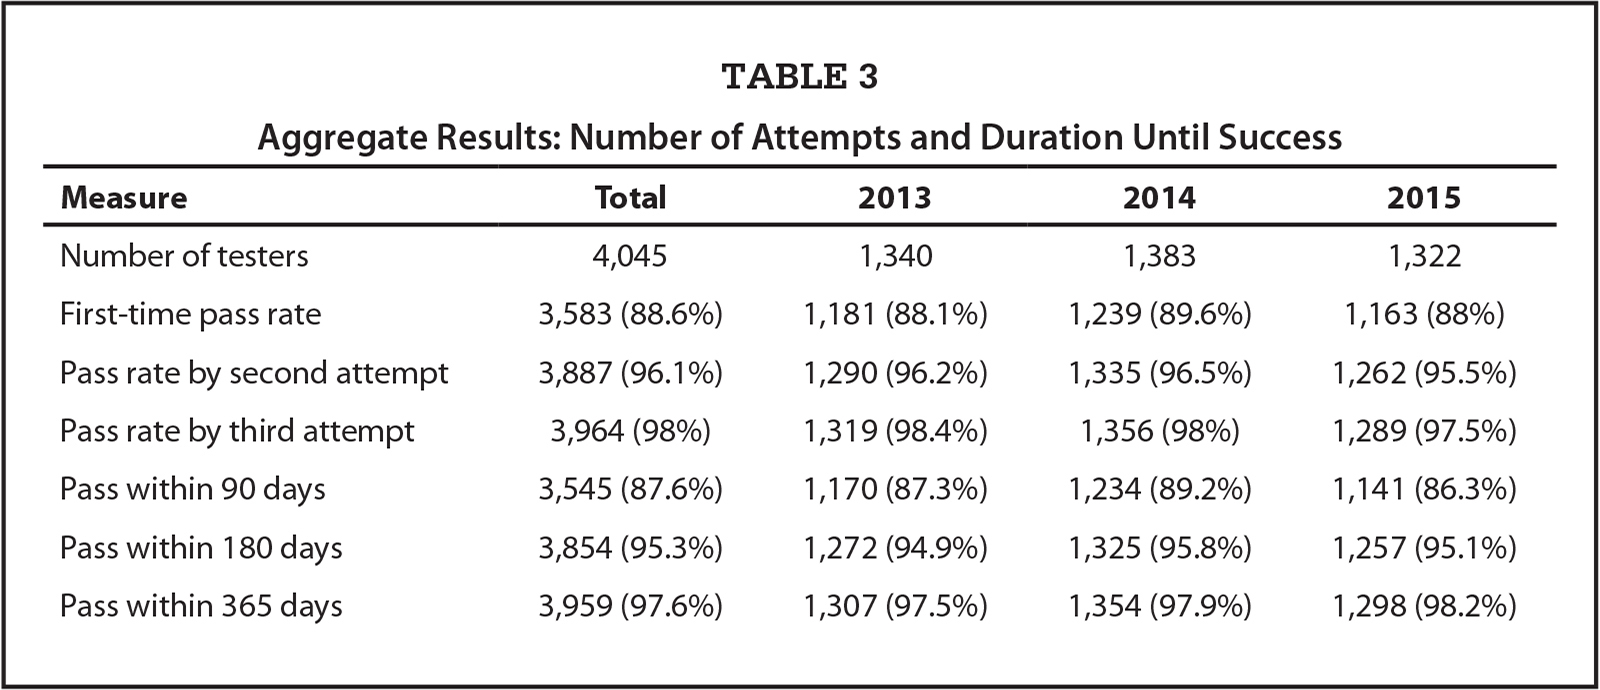 Aggregate Results: Number of Attempts and Duration Until Success